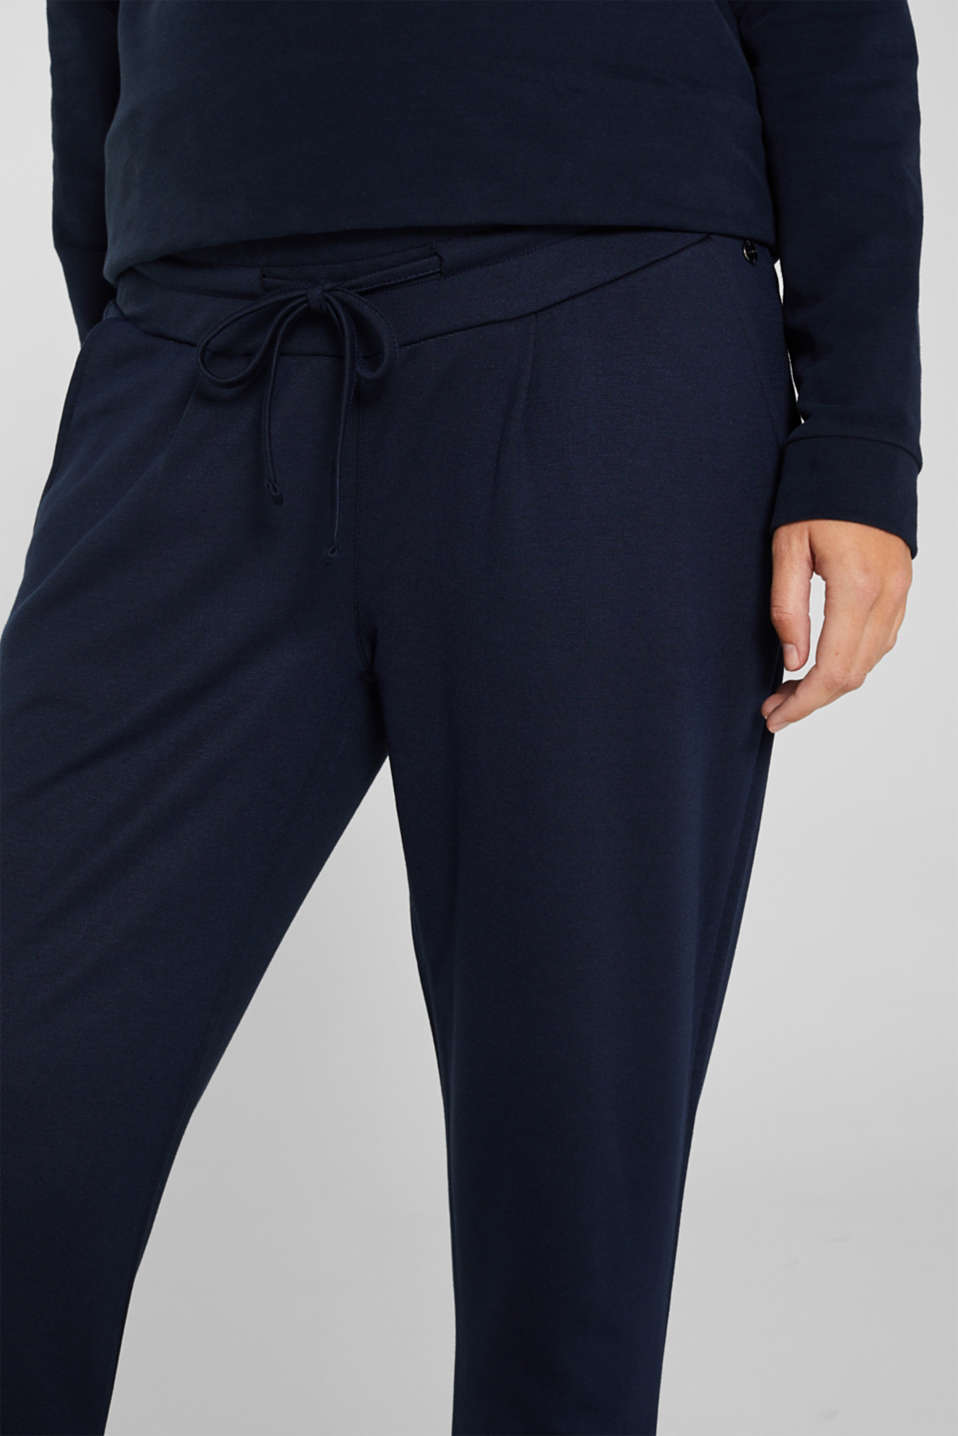 Stretch jersey trousers with under-bump waistband, LCNIGHT BLUE, detail image number 2